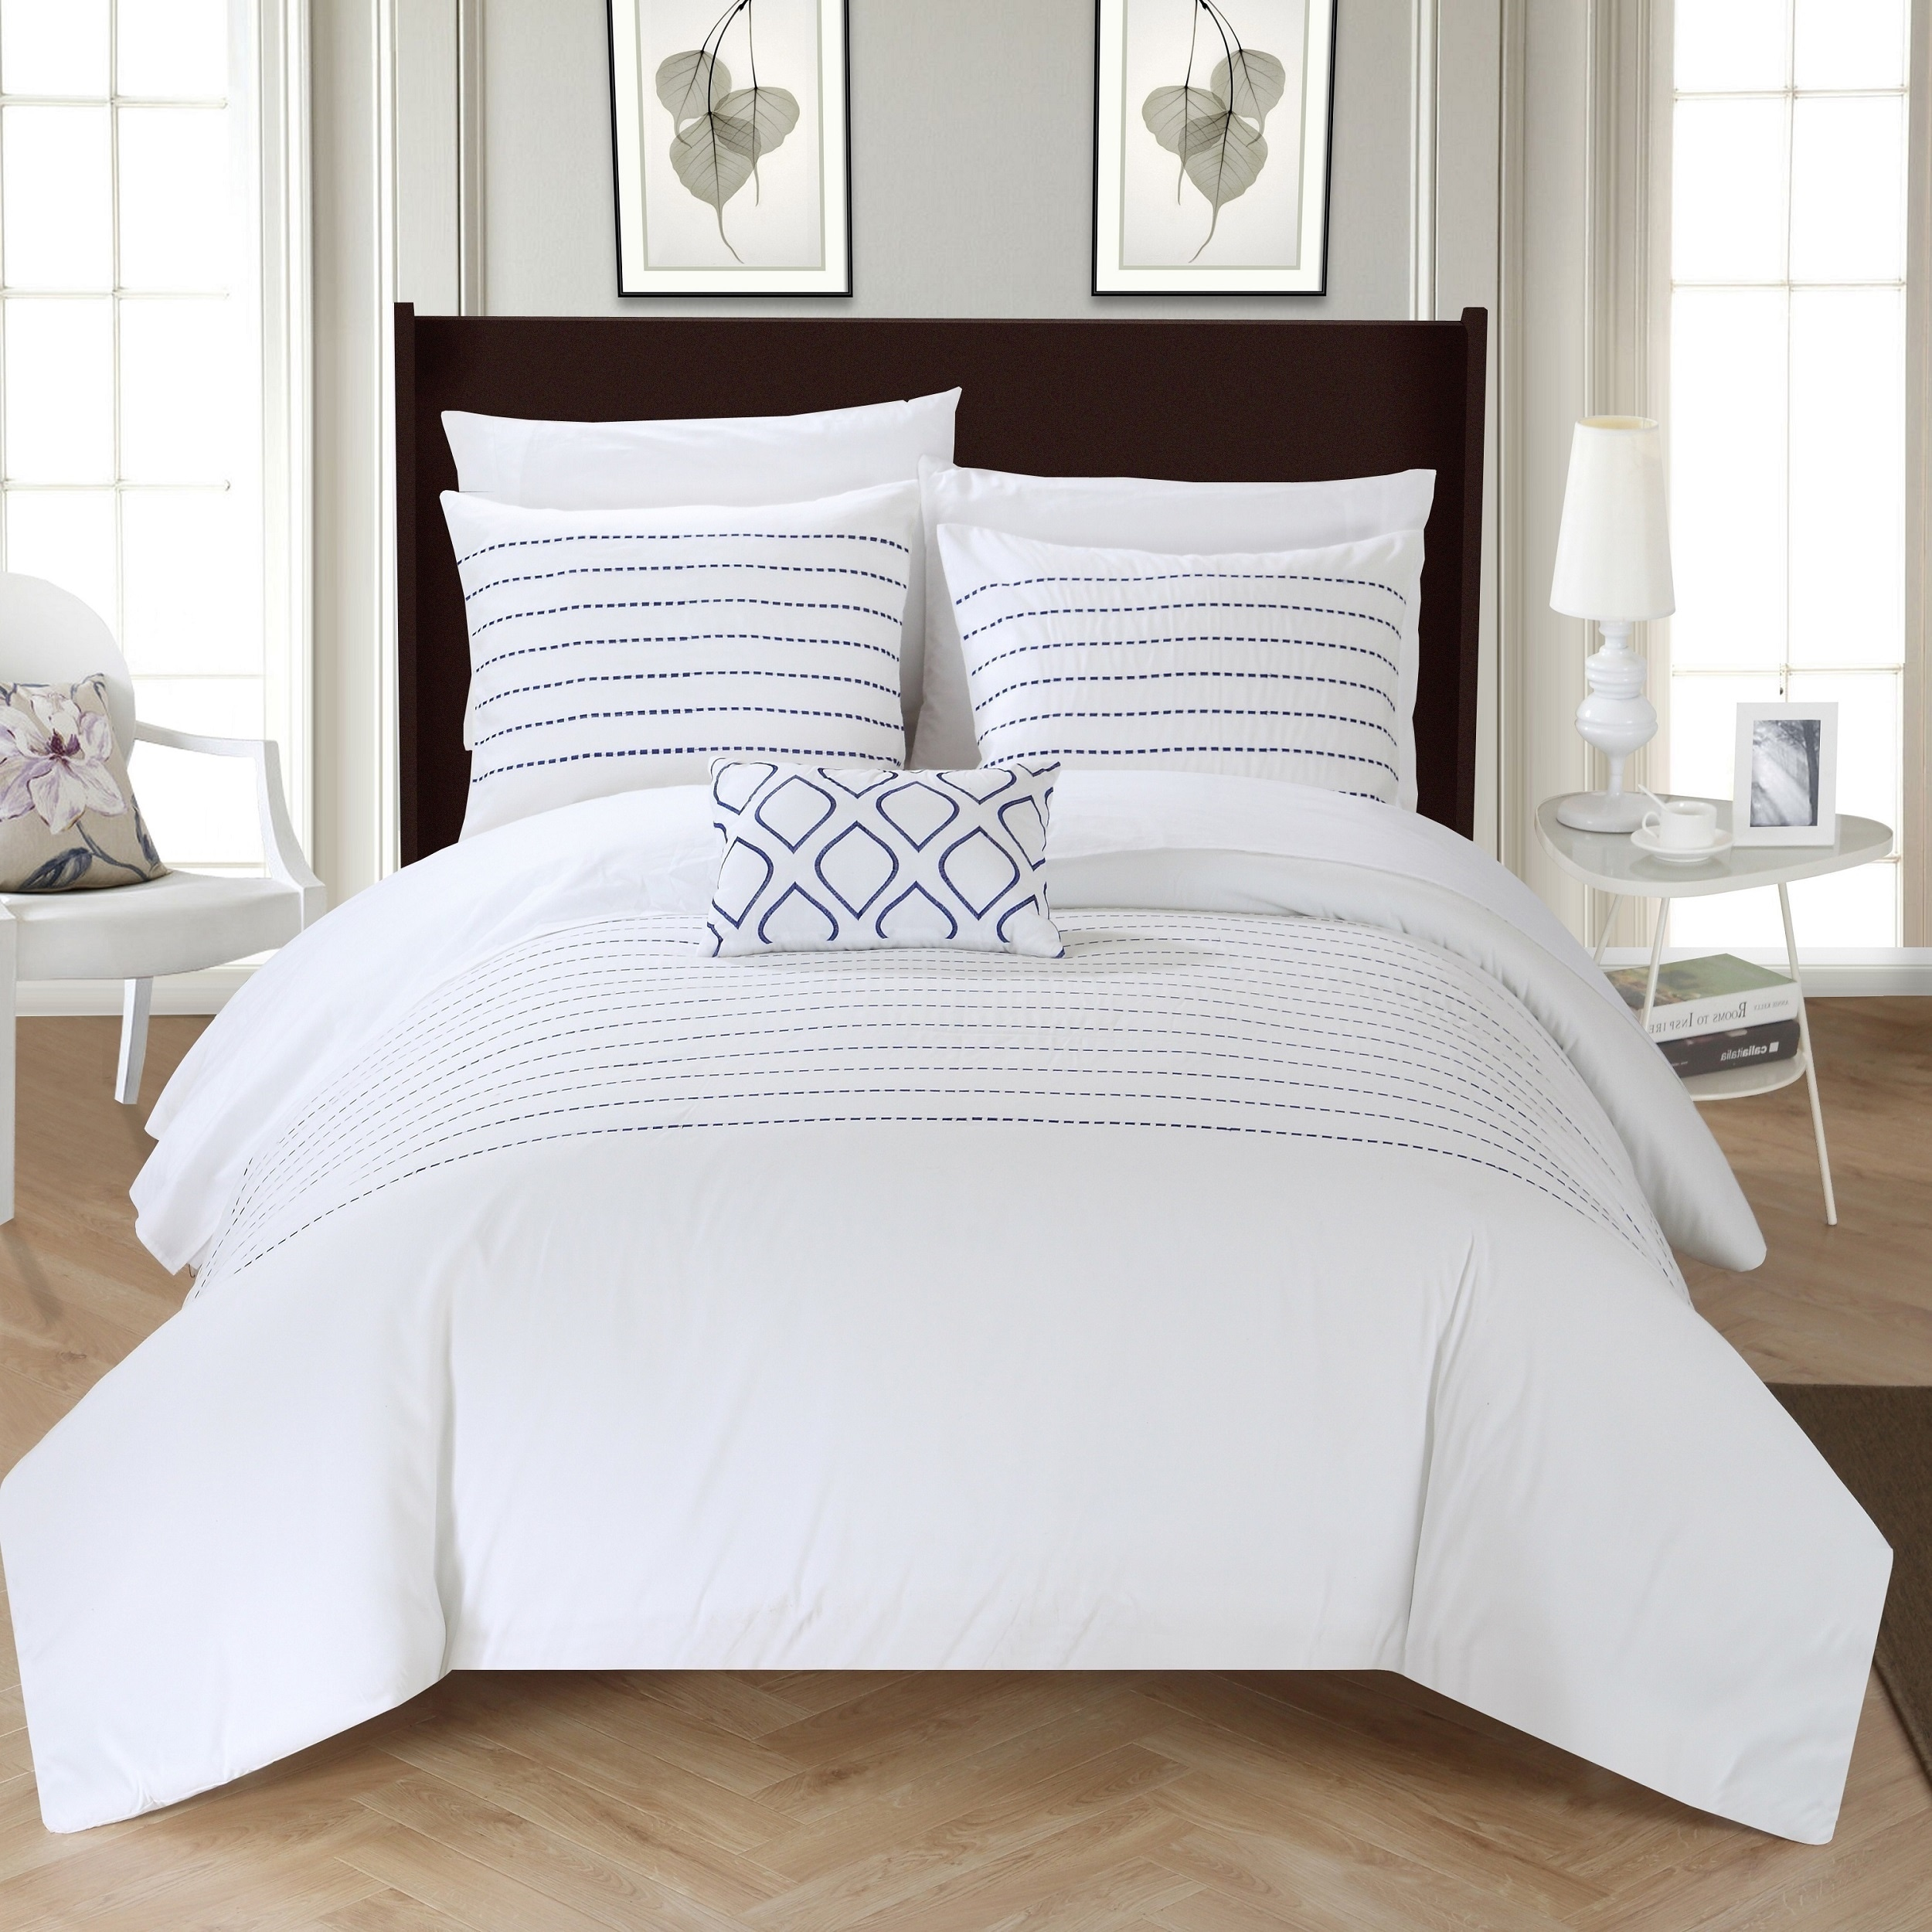 Bed In A Bag Find Great Fashion Bedding Deals Ping At